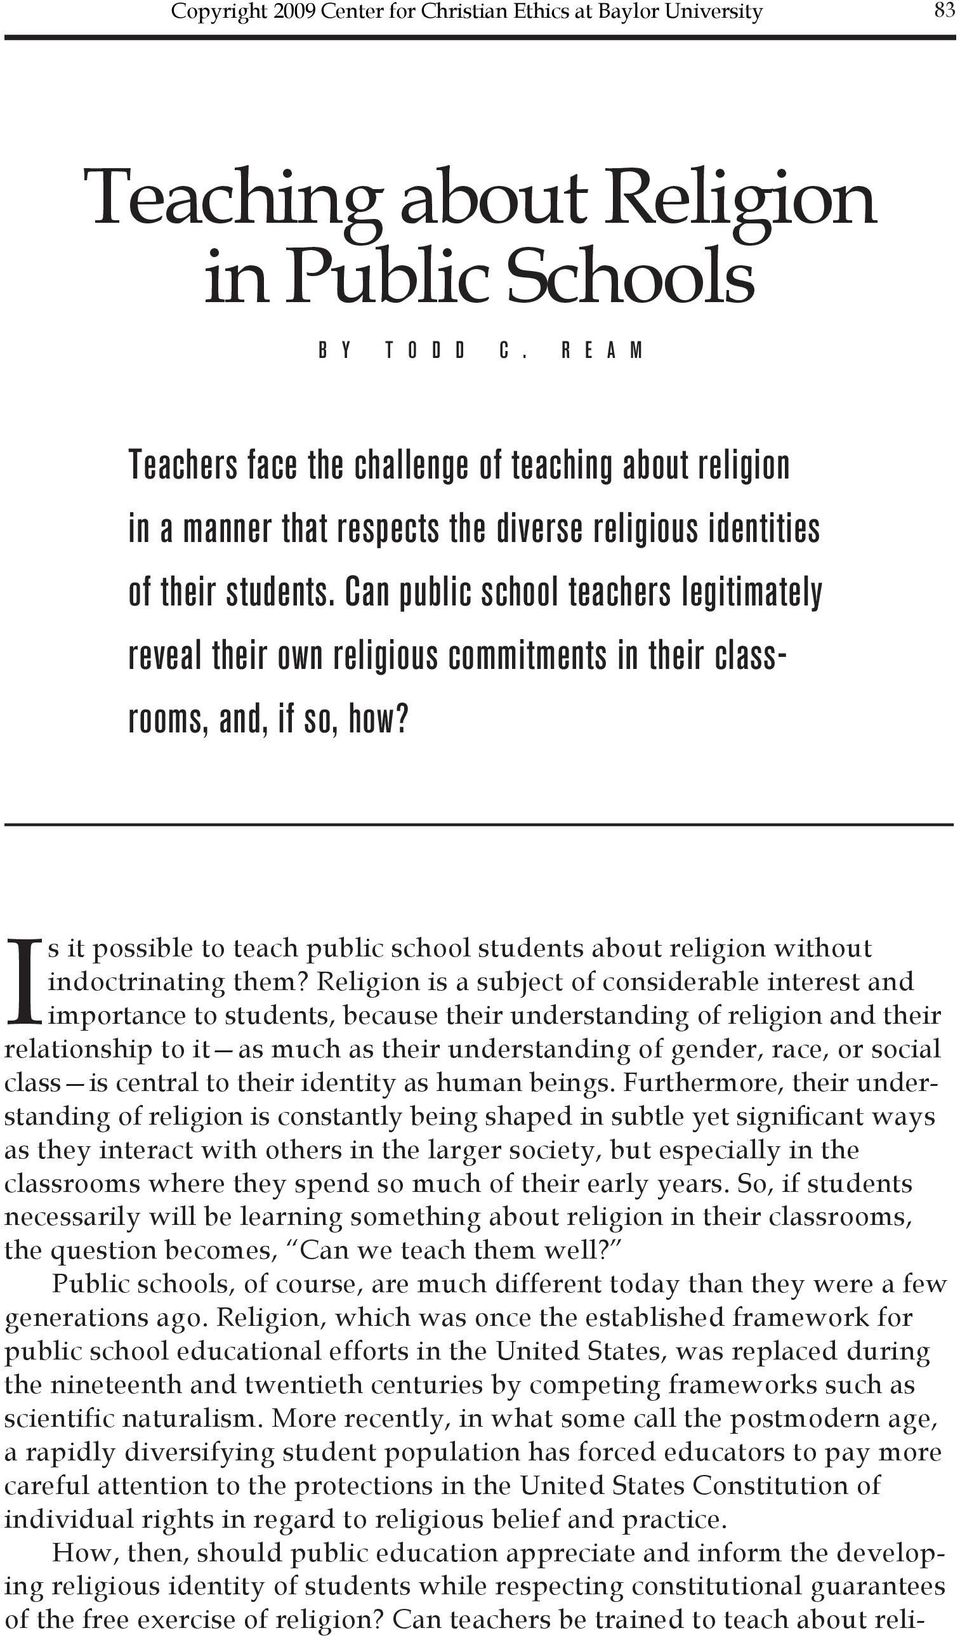 Is it possible to teach public school students about religion without indoctrinating them?